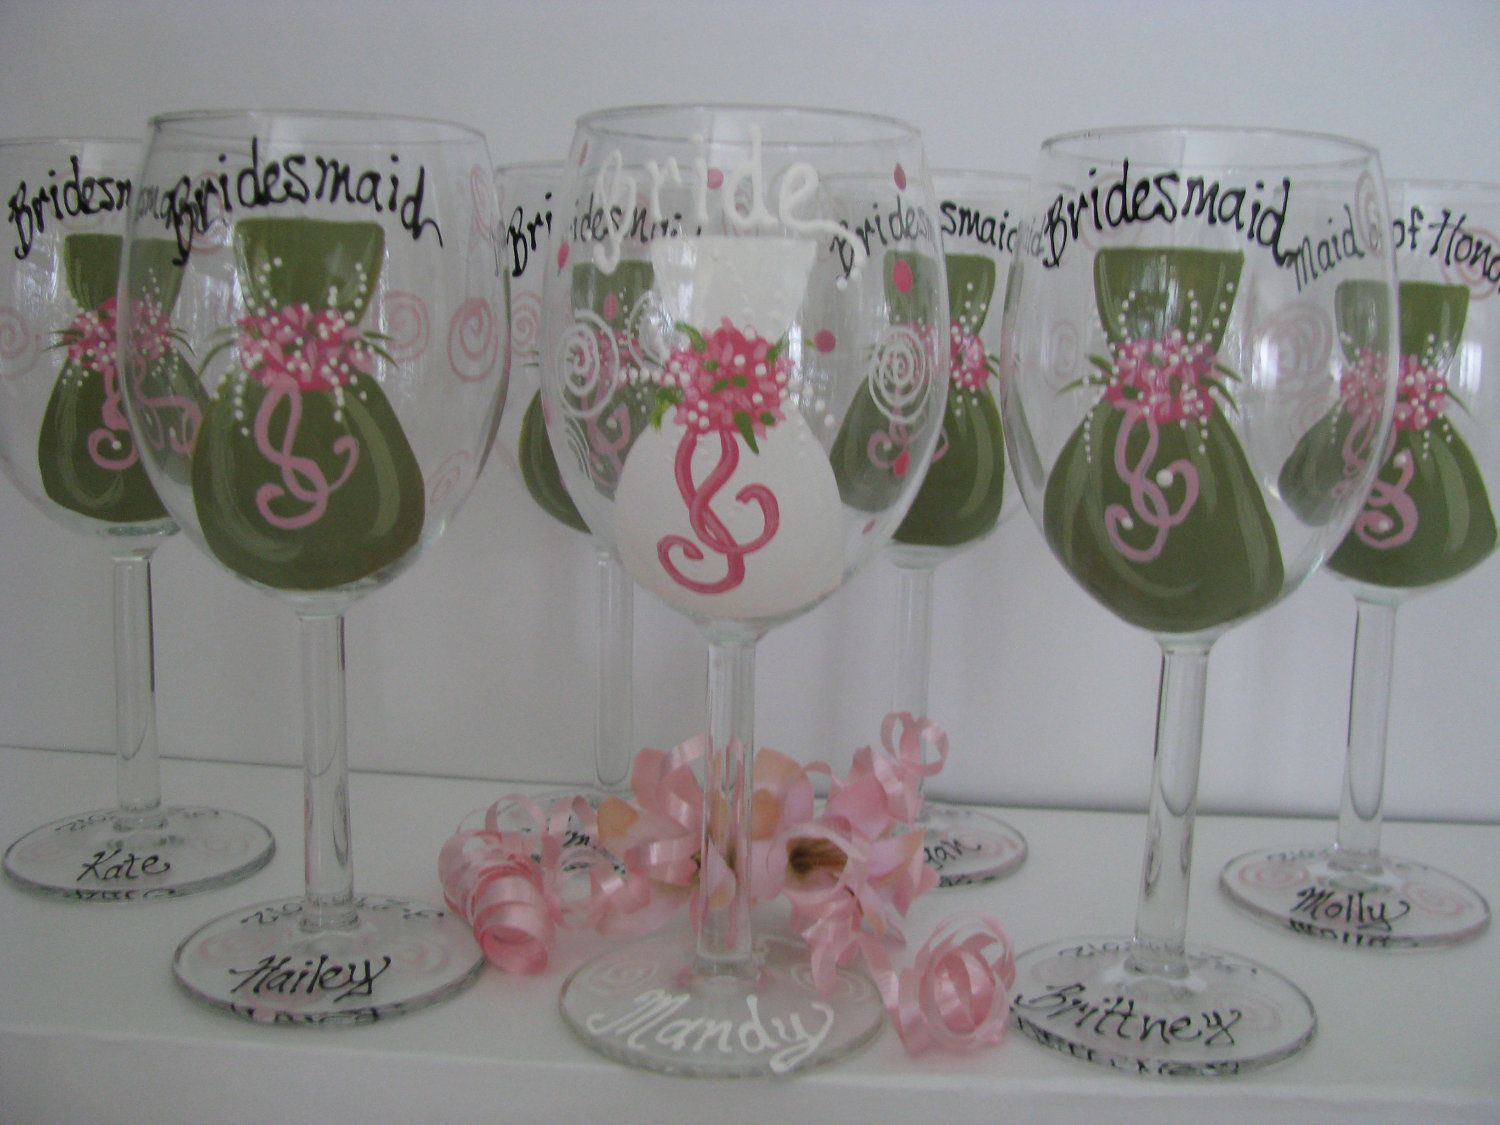 How to decorate wine glasses for bridesmaids - Hand Painted Wine Glasses Ideas Bridesmaid One Wine Glasses Bride Groom Hand Painted Bridal Party